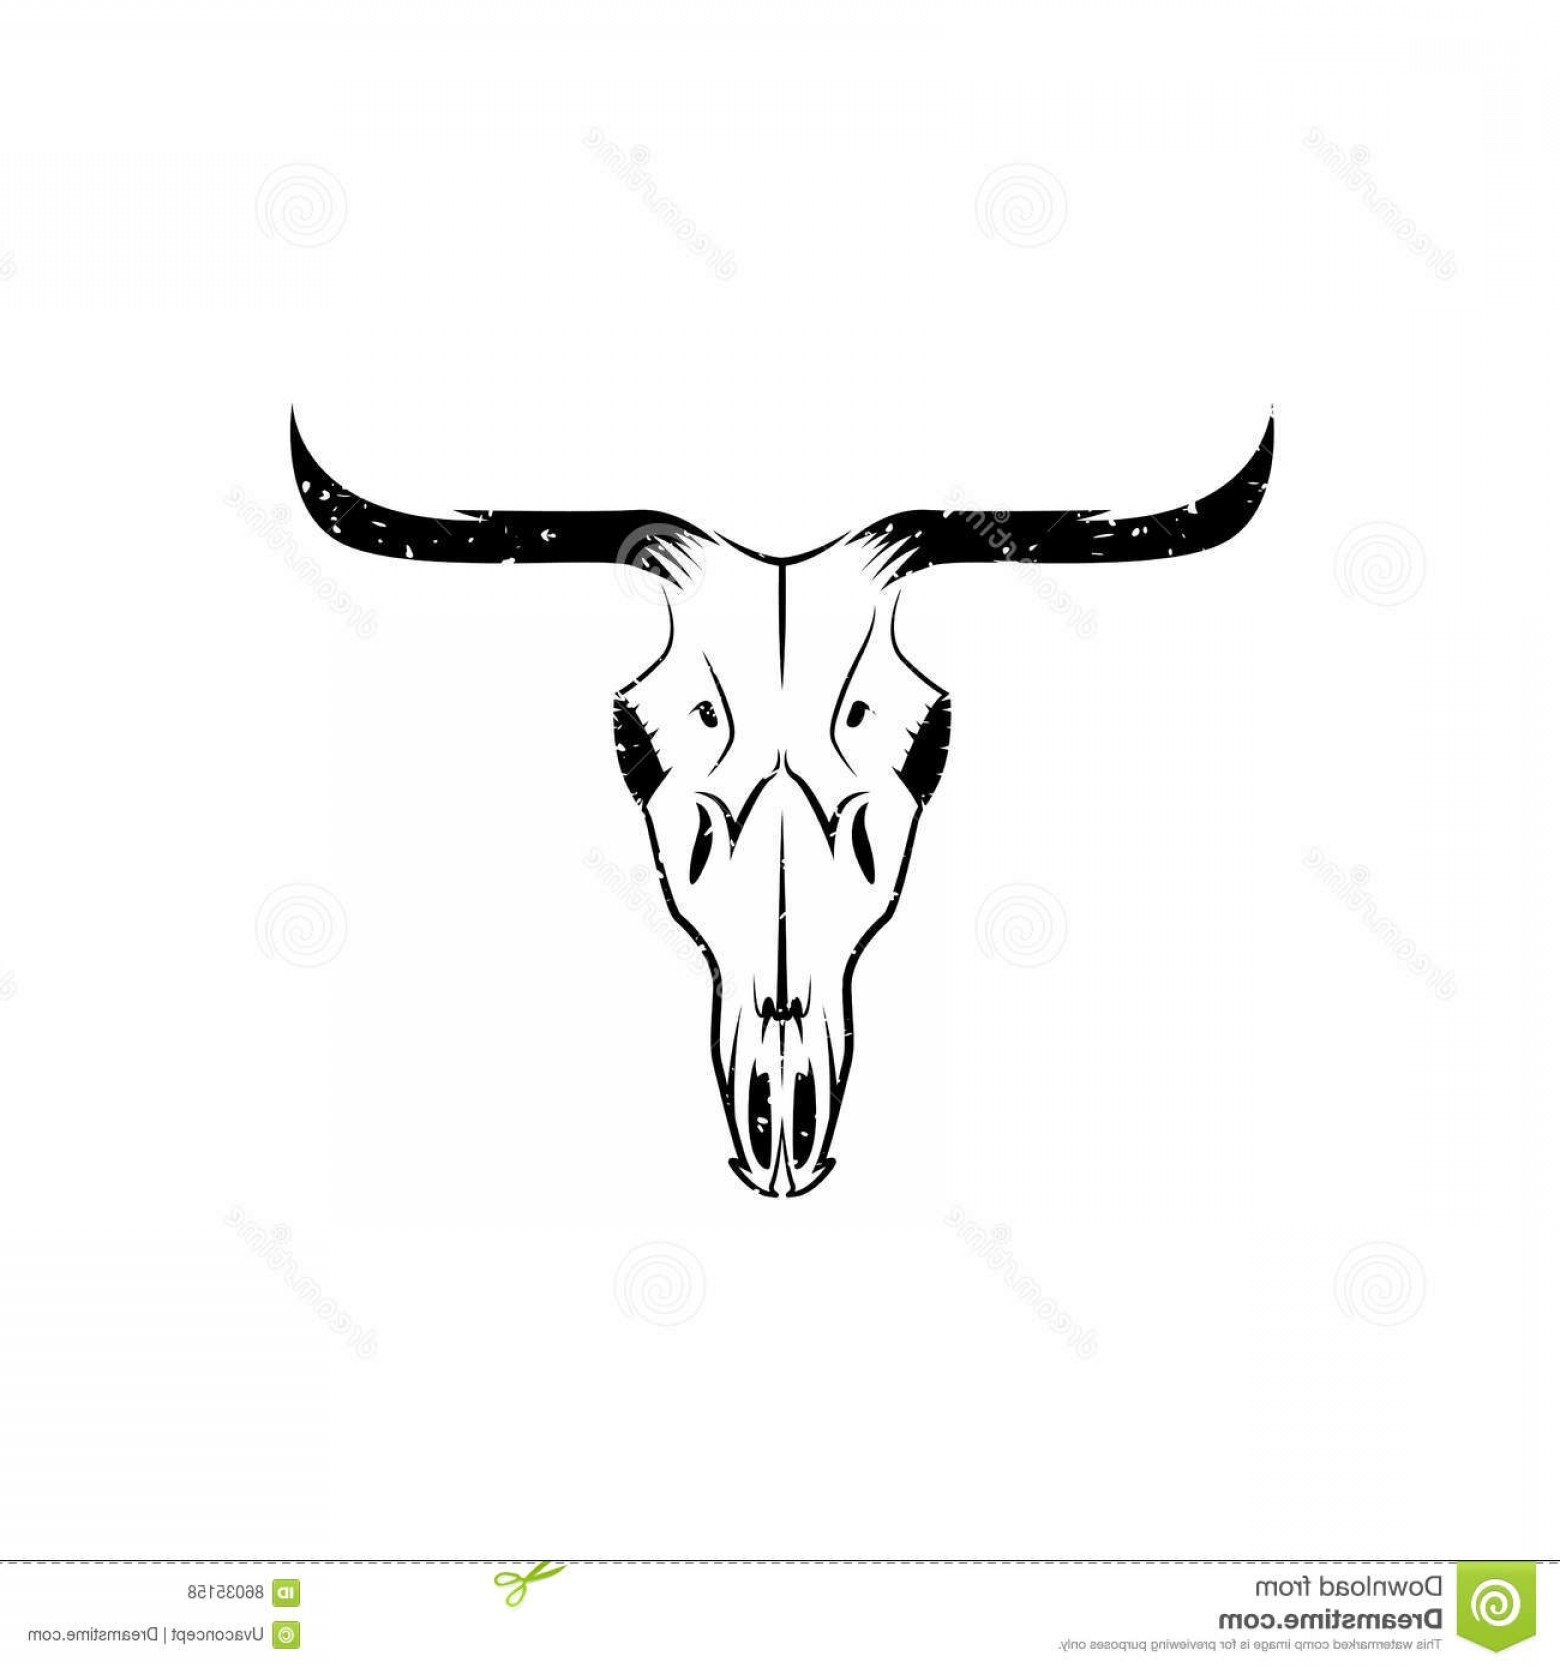 Longhorn Skull Vector: Stock Illustration Abstract Grunge Texas Cow Skull Vector Design Template Image